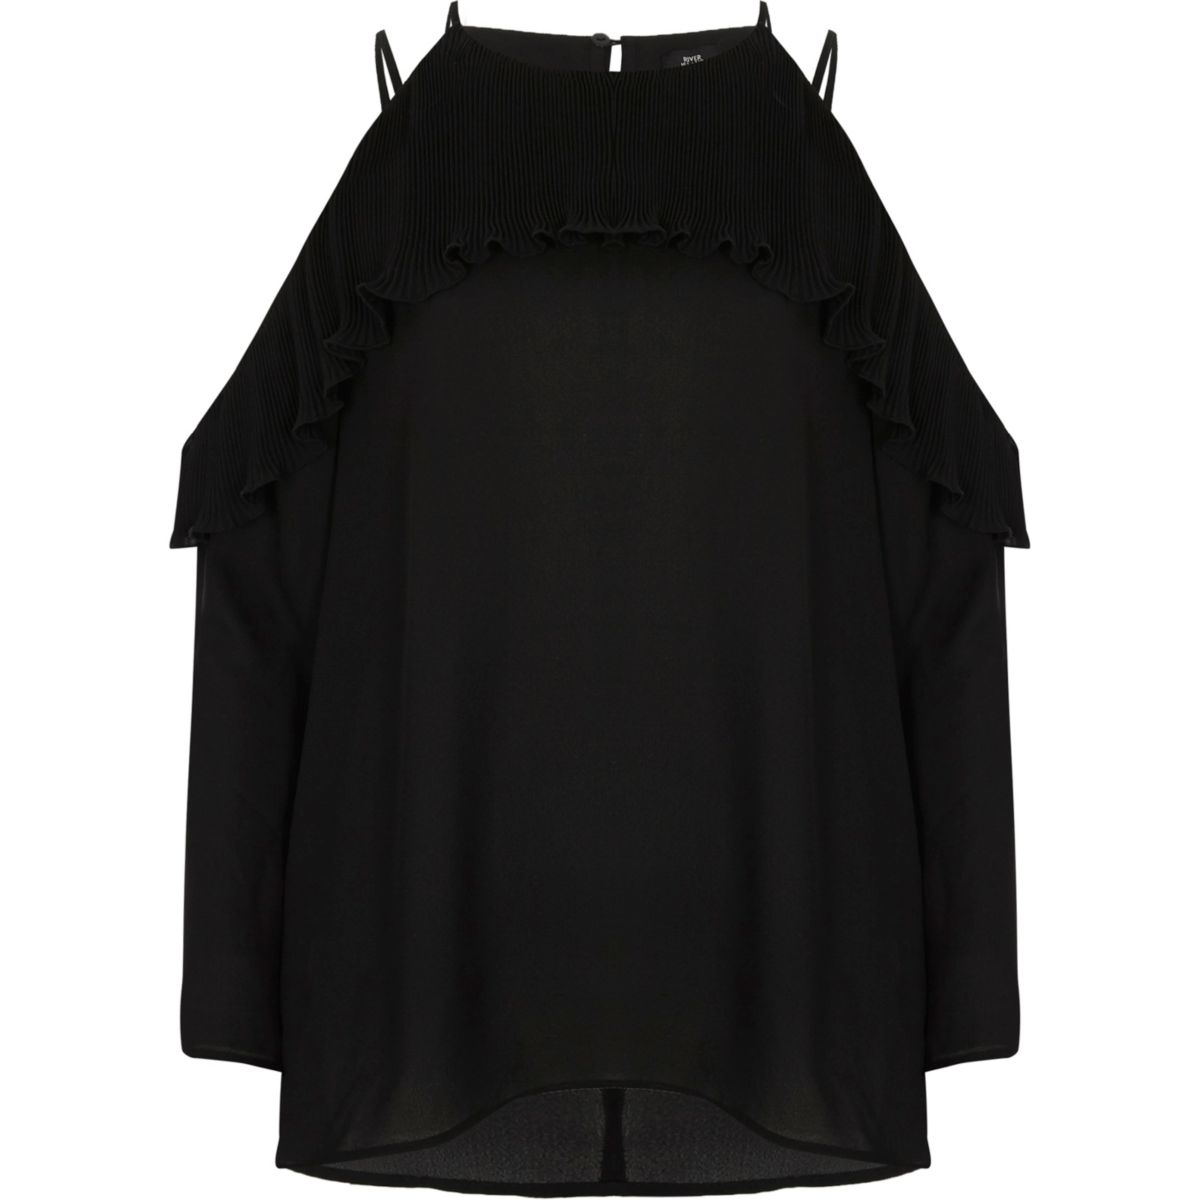 Black cold shoulder pleated frill blouse